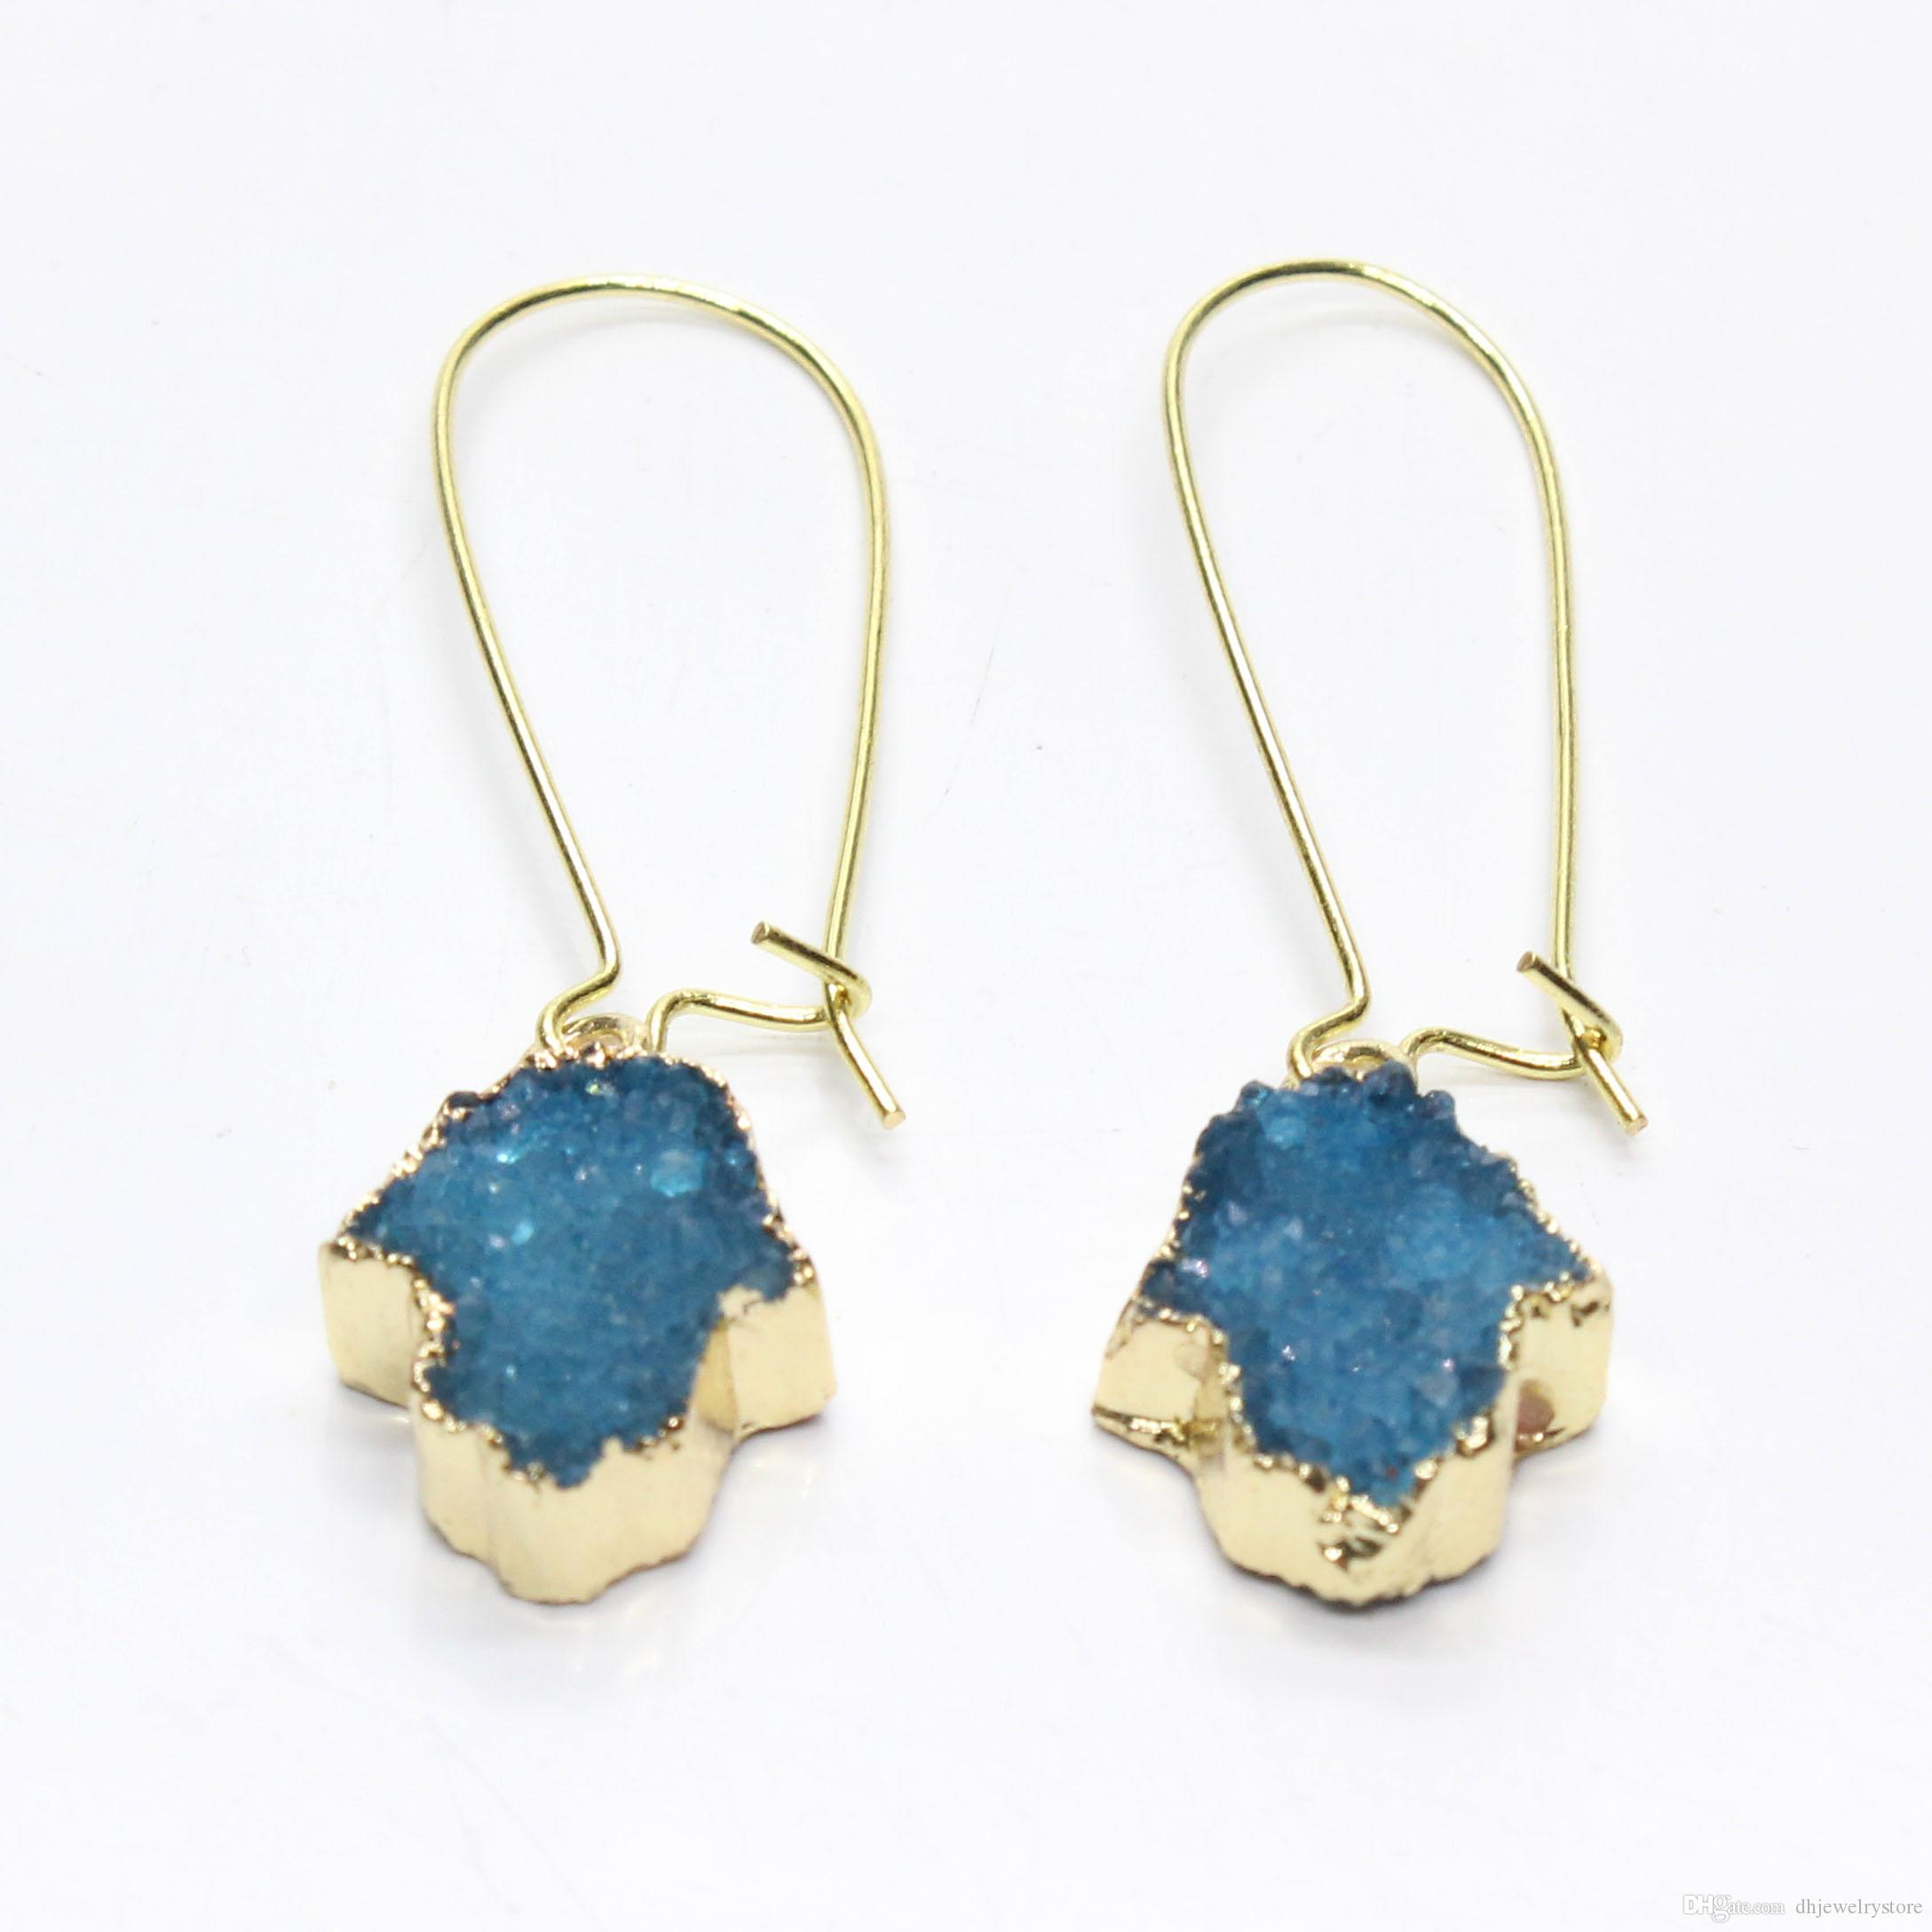 Wholesale 10 Pairs Gold Plated Irregular Shape Crystal Dyed Lake Blue Green Hamsa Hand of Fatima Earrings Purple Jewelry